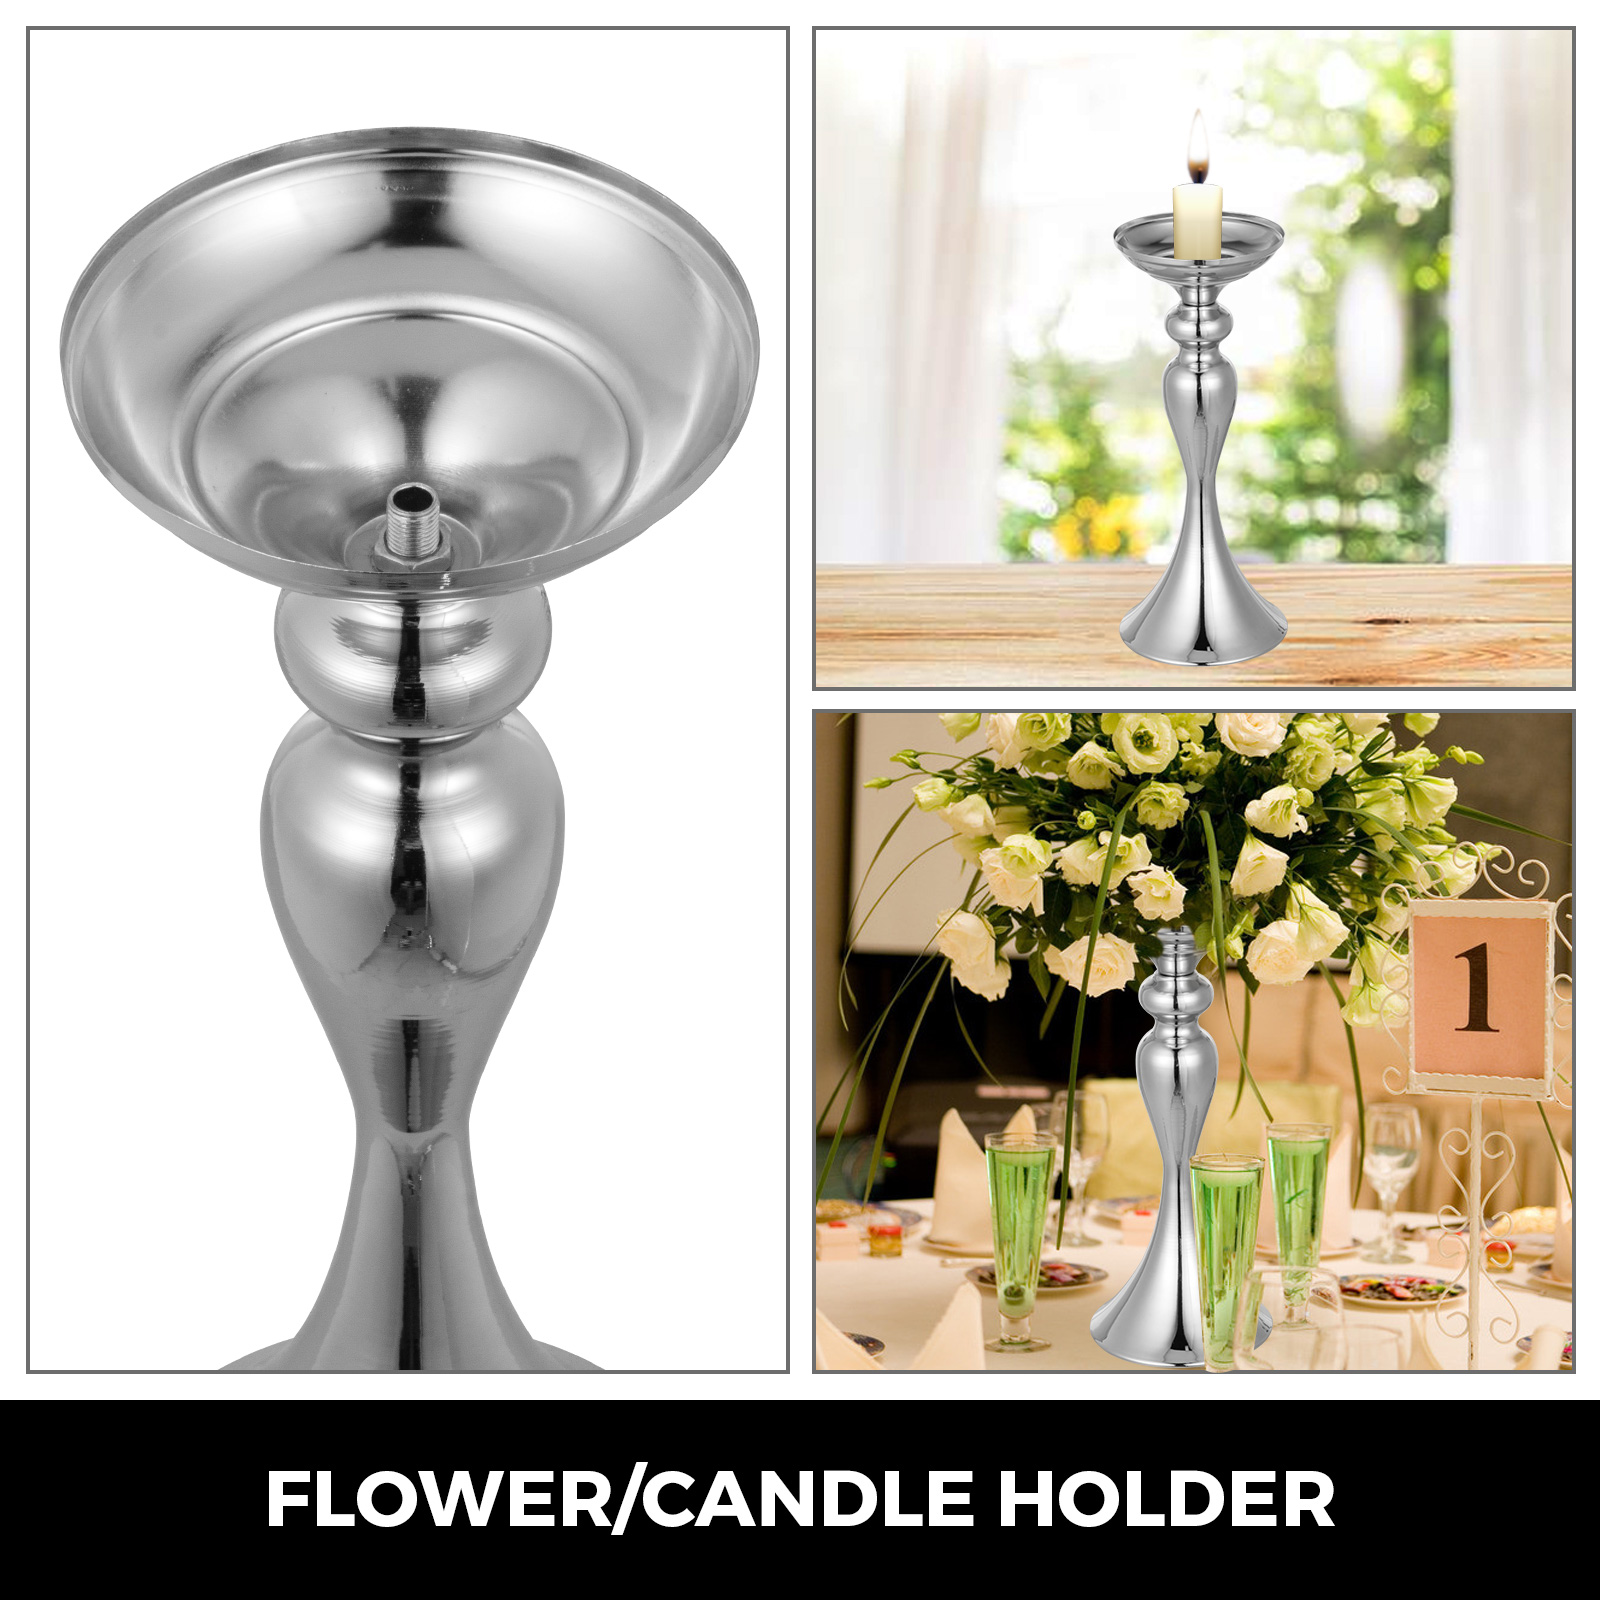 Flower-Rack-for-Wedding-Metal-Candle-Stand-4-11pcs-Centerpiece-Flower-Vase thumbnail 195